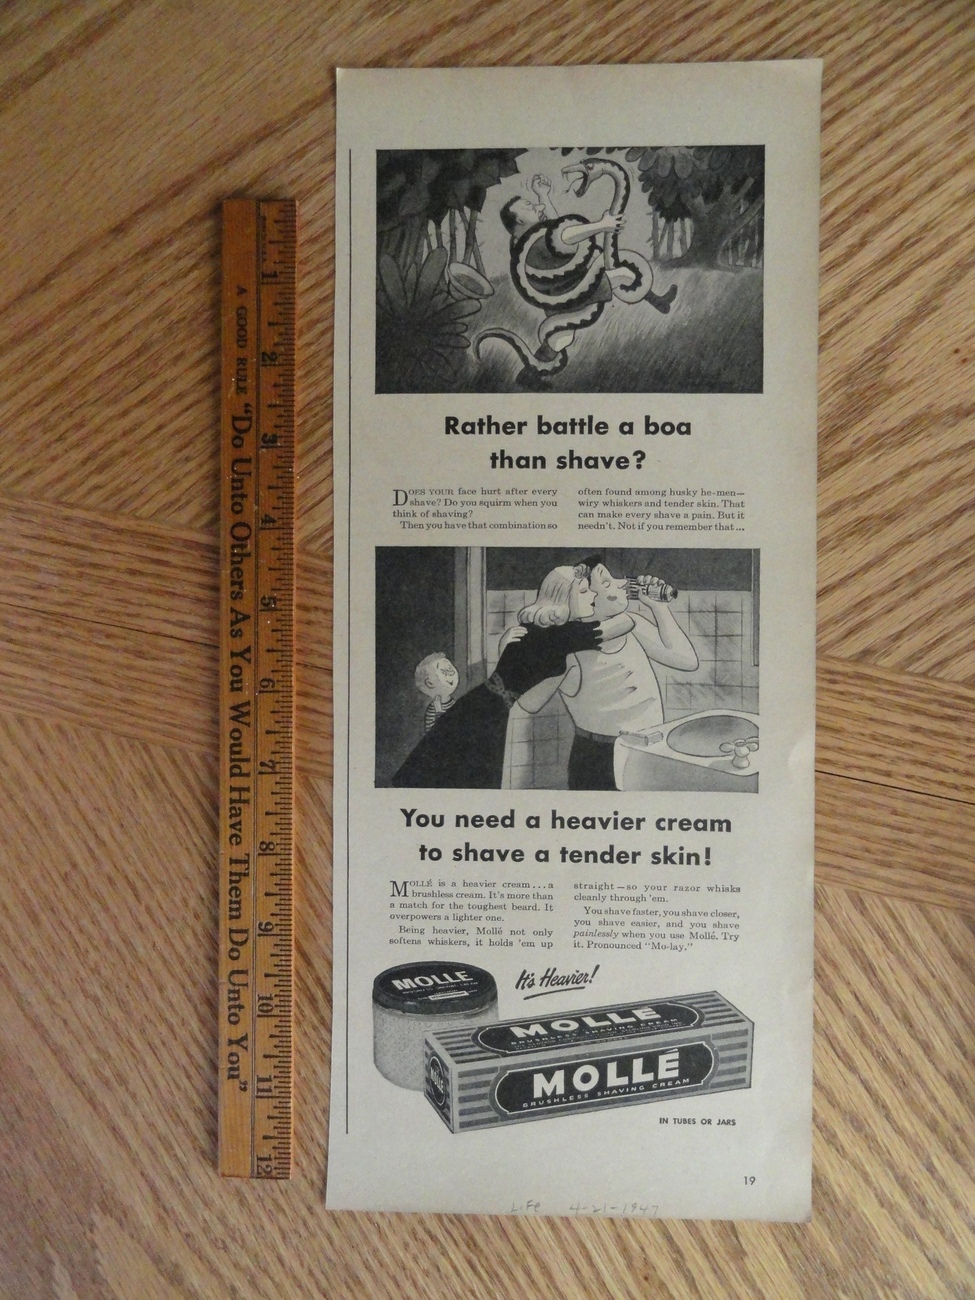 Molle brushless shaving cream 1947 magazine print Ad.   Bonanza